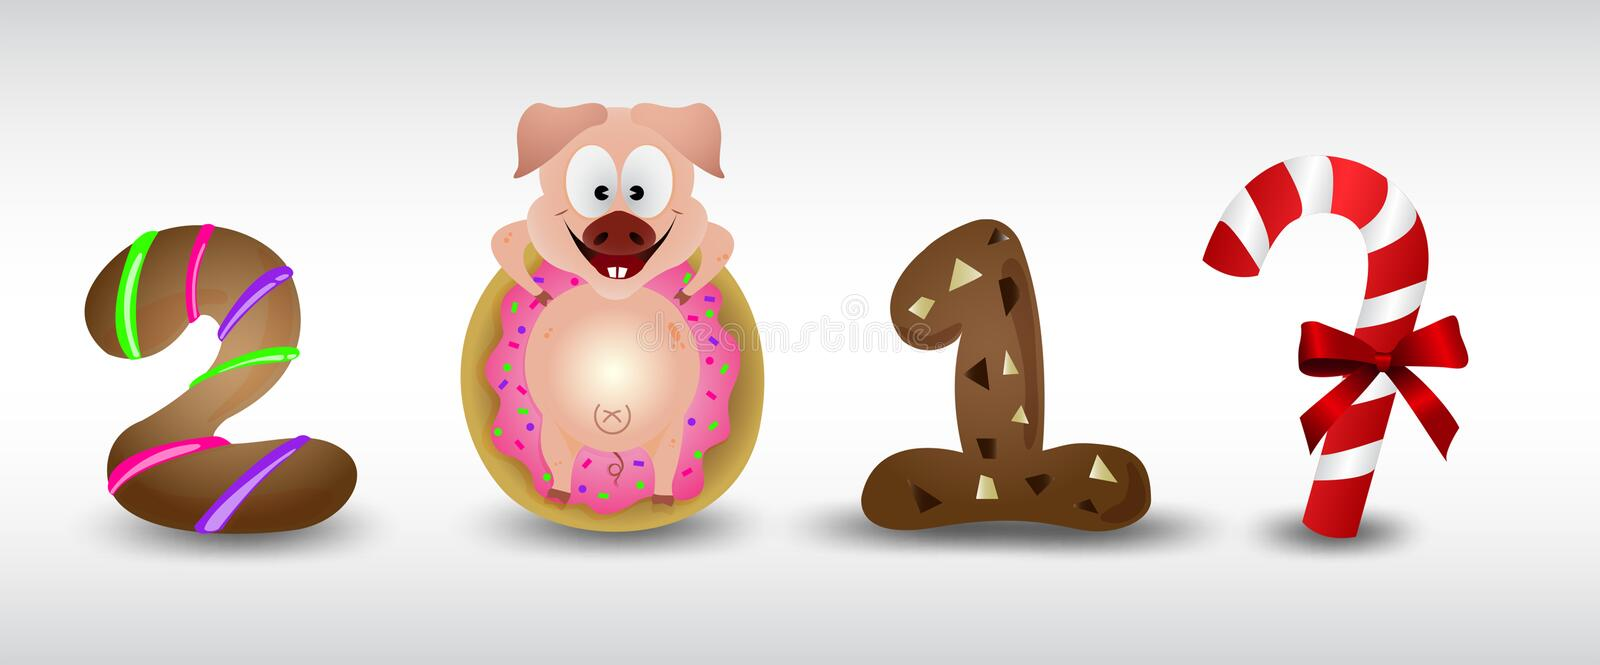 Happy New Year 2019 zodiac pig sign characters with cookie & donut stock illustration